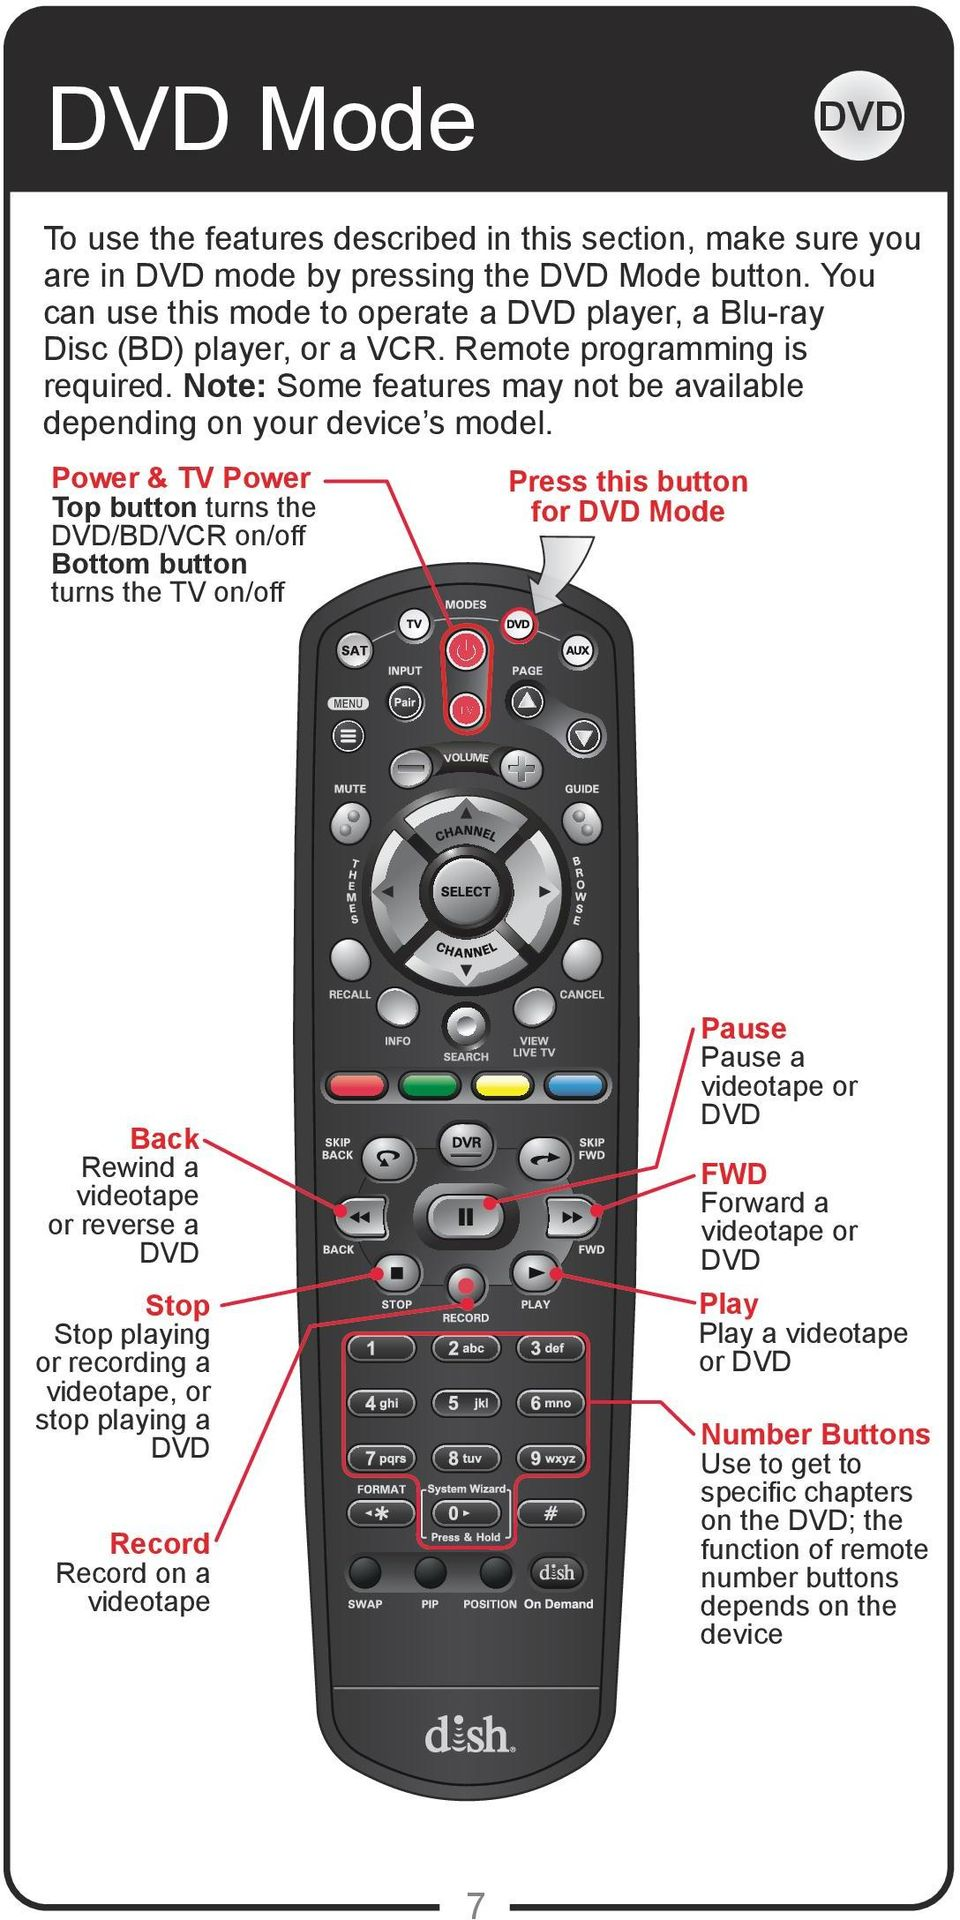 Power & TV Power Top button turns the DVD/BD/VCR on/off Bottom button turns the TV on/off Press this button for DVD Mode Back Rewind a videotape or reverse a DVD Stop Stop playing or recording a